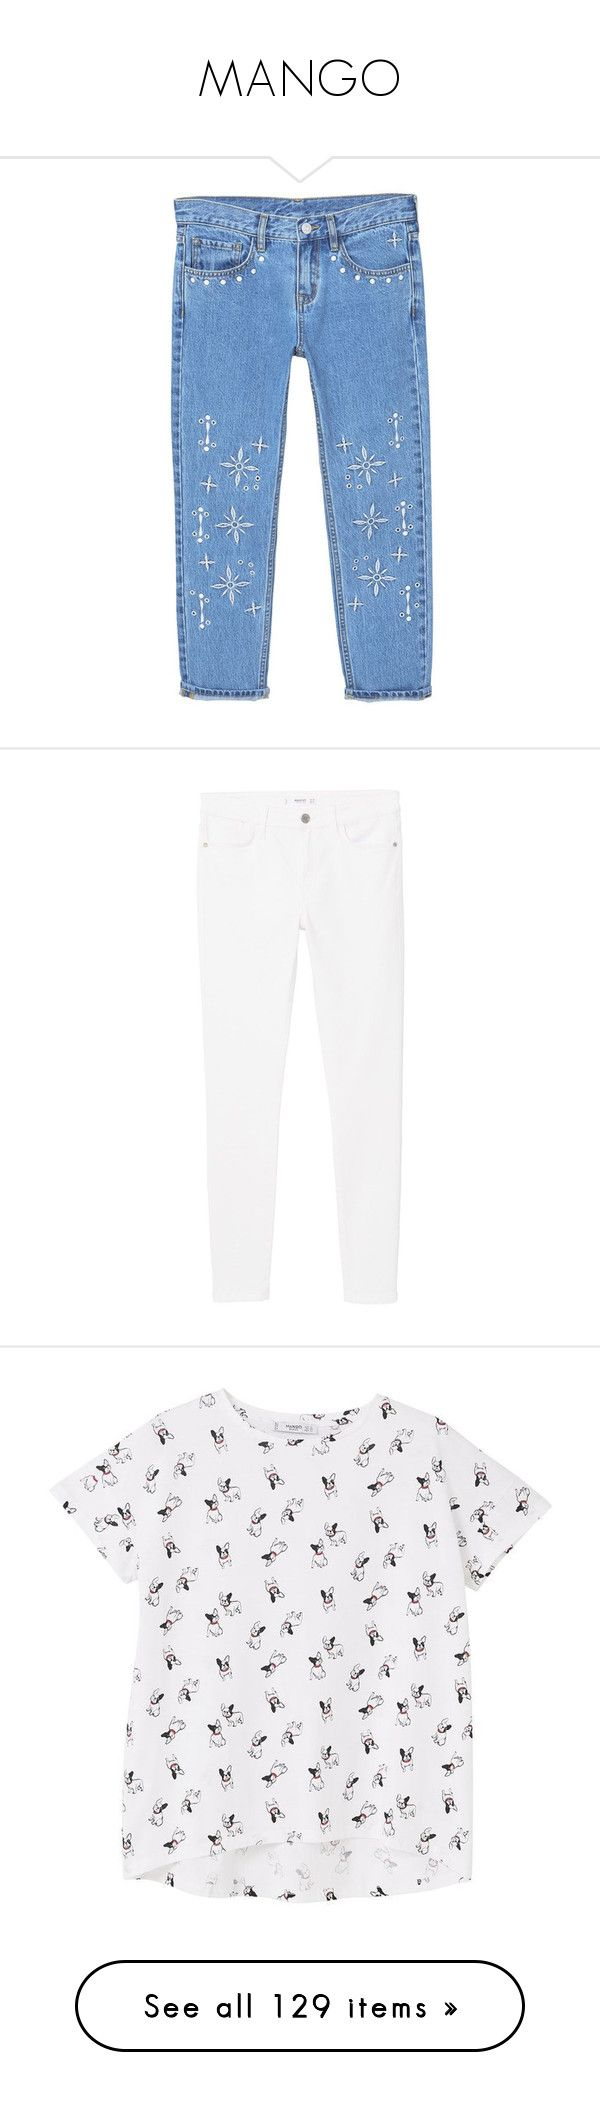 """""""MANGO"""" by littlewhitedaisy ❤ liked on Polyvore featuring mango, jeans, bottoms, relaxed fit jeans, embroidered jeans, embroidery jeans, relaxed jeans, mango jeans, women jeans and white jeans"""